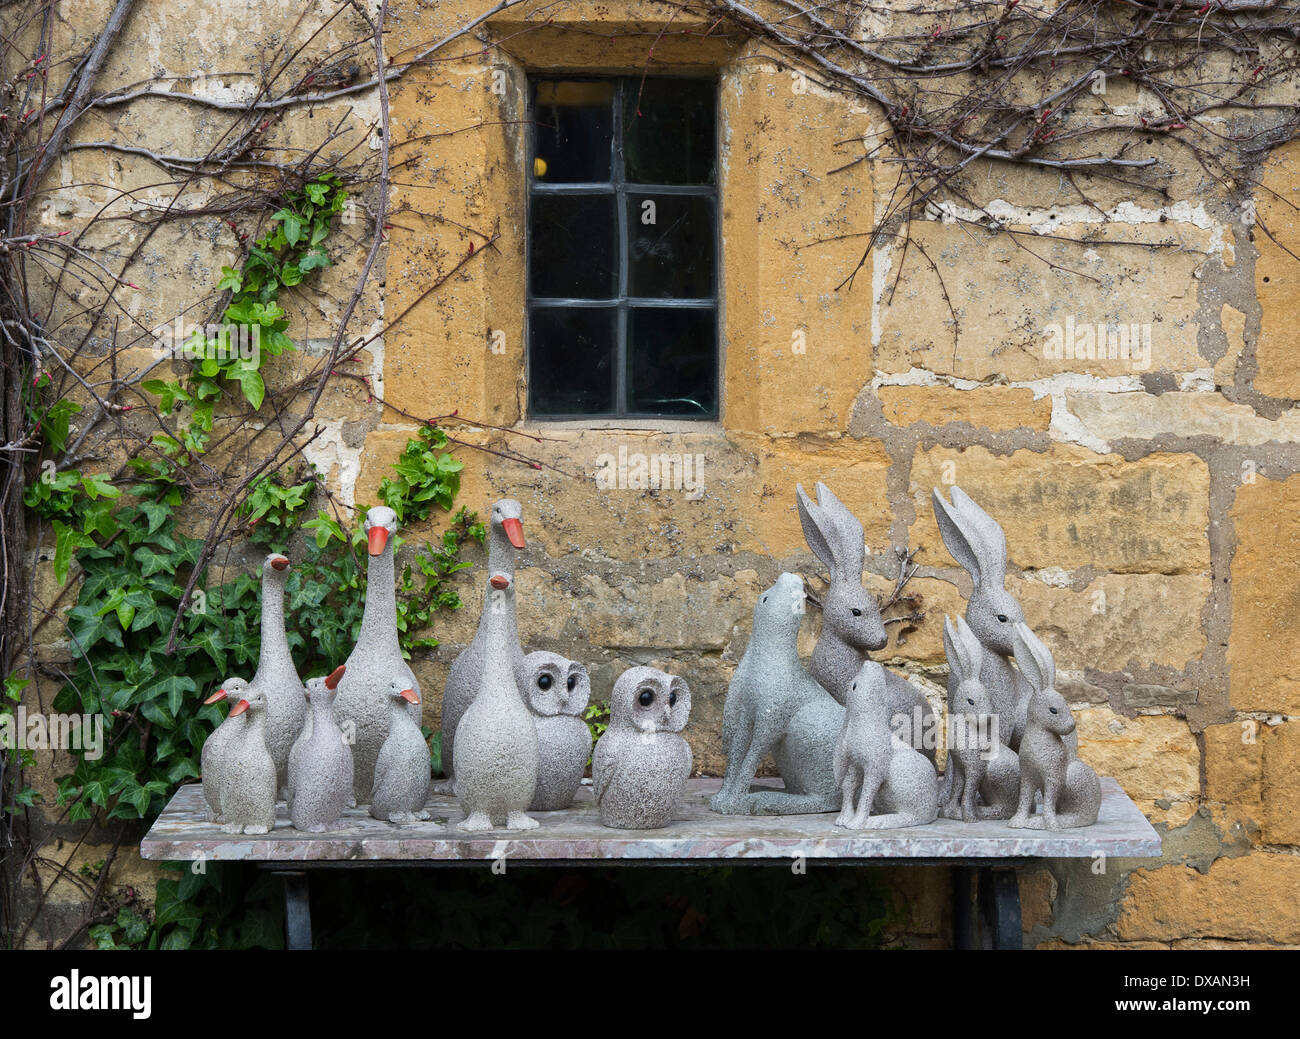 Outside ornaments - Stock Photo Stone Animal Ornaments On A Shelf Outside A Cotswold Stone House Broadway Cotwolds England